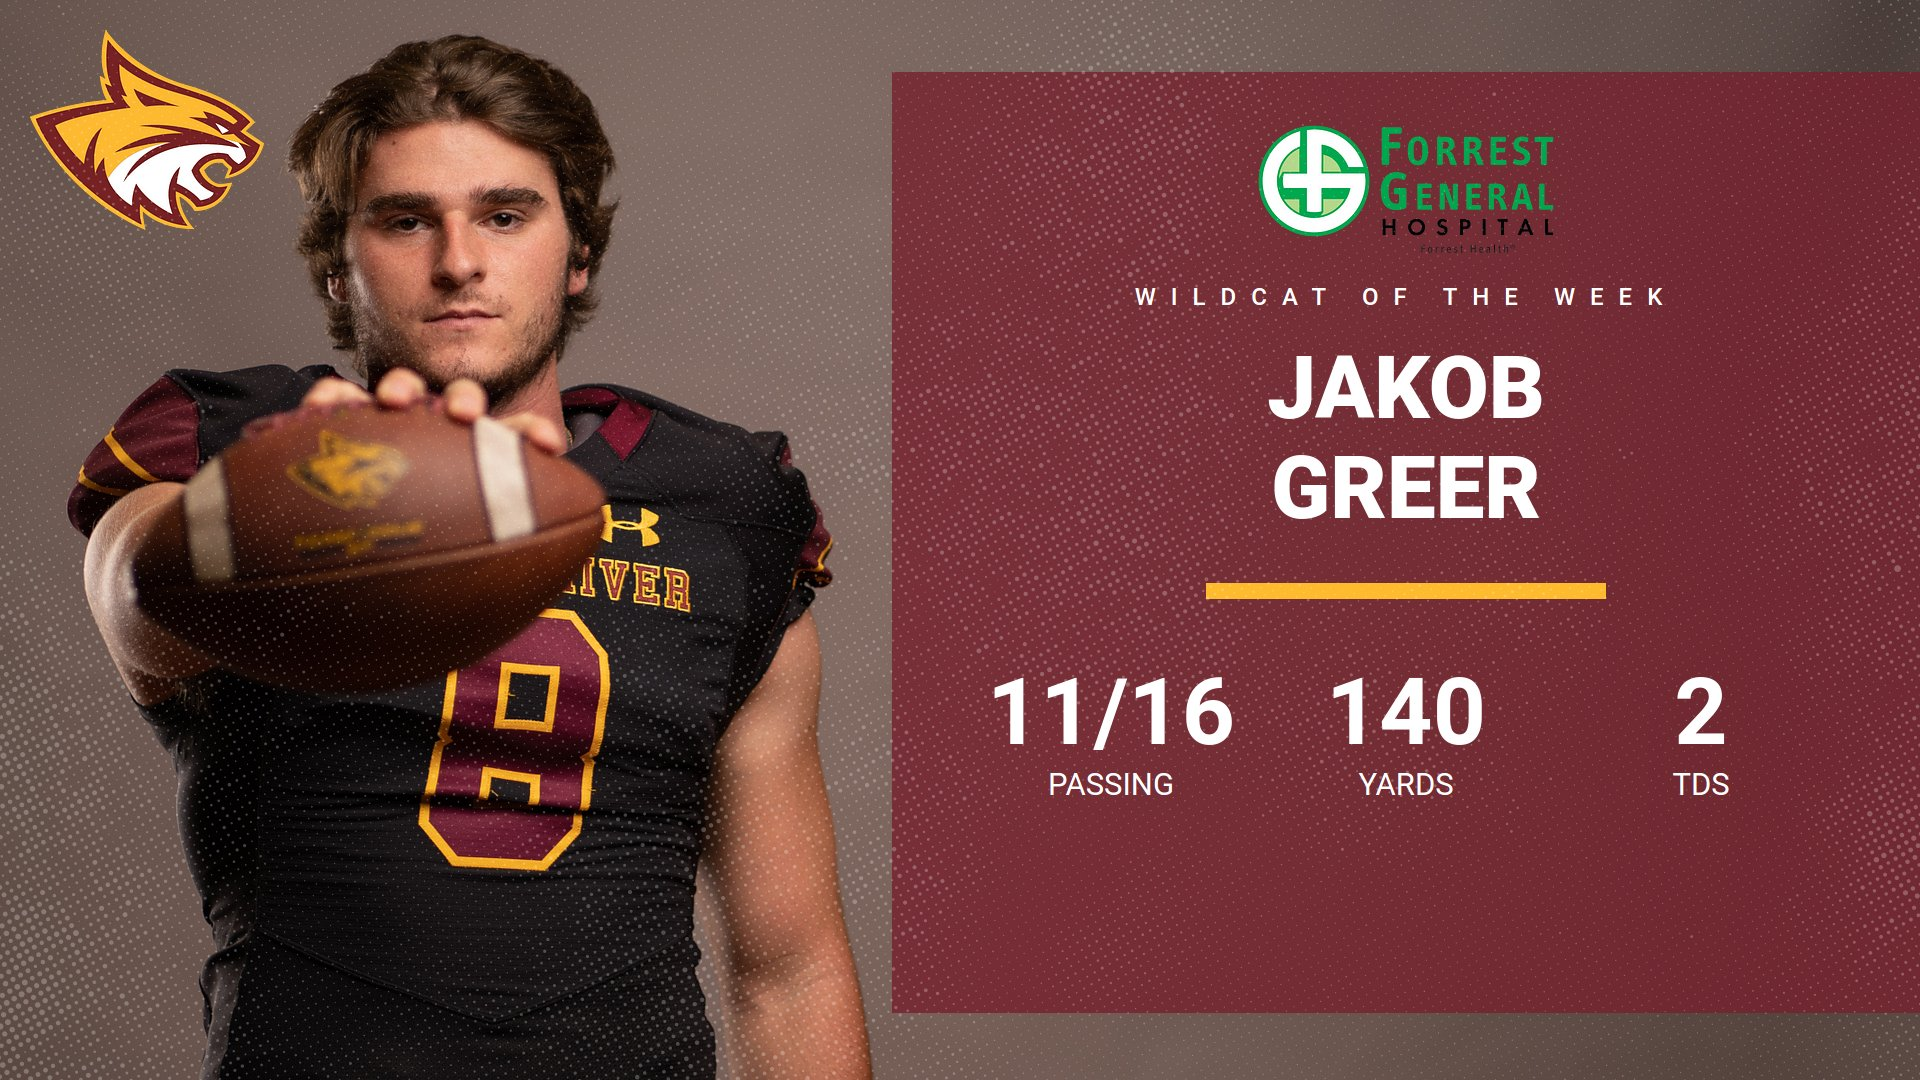 Pearl River's Jakob Greer named Forrest General Wildcat of the Week